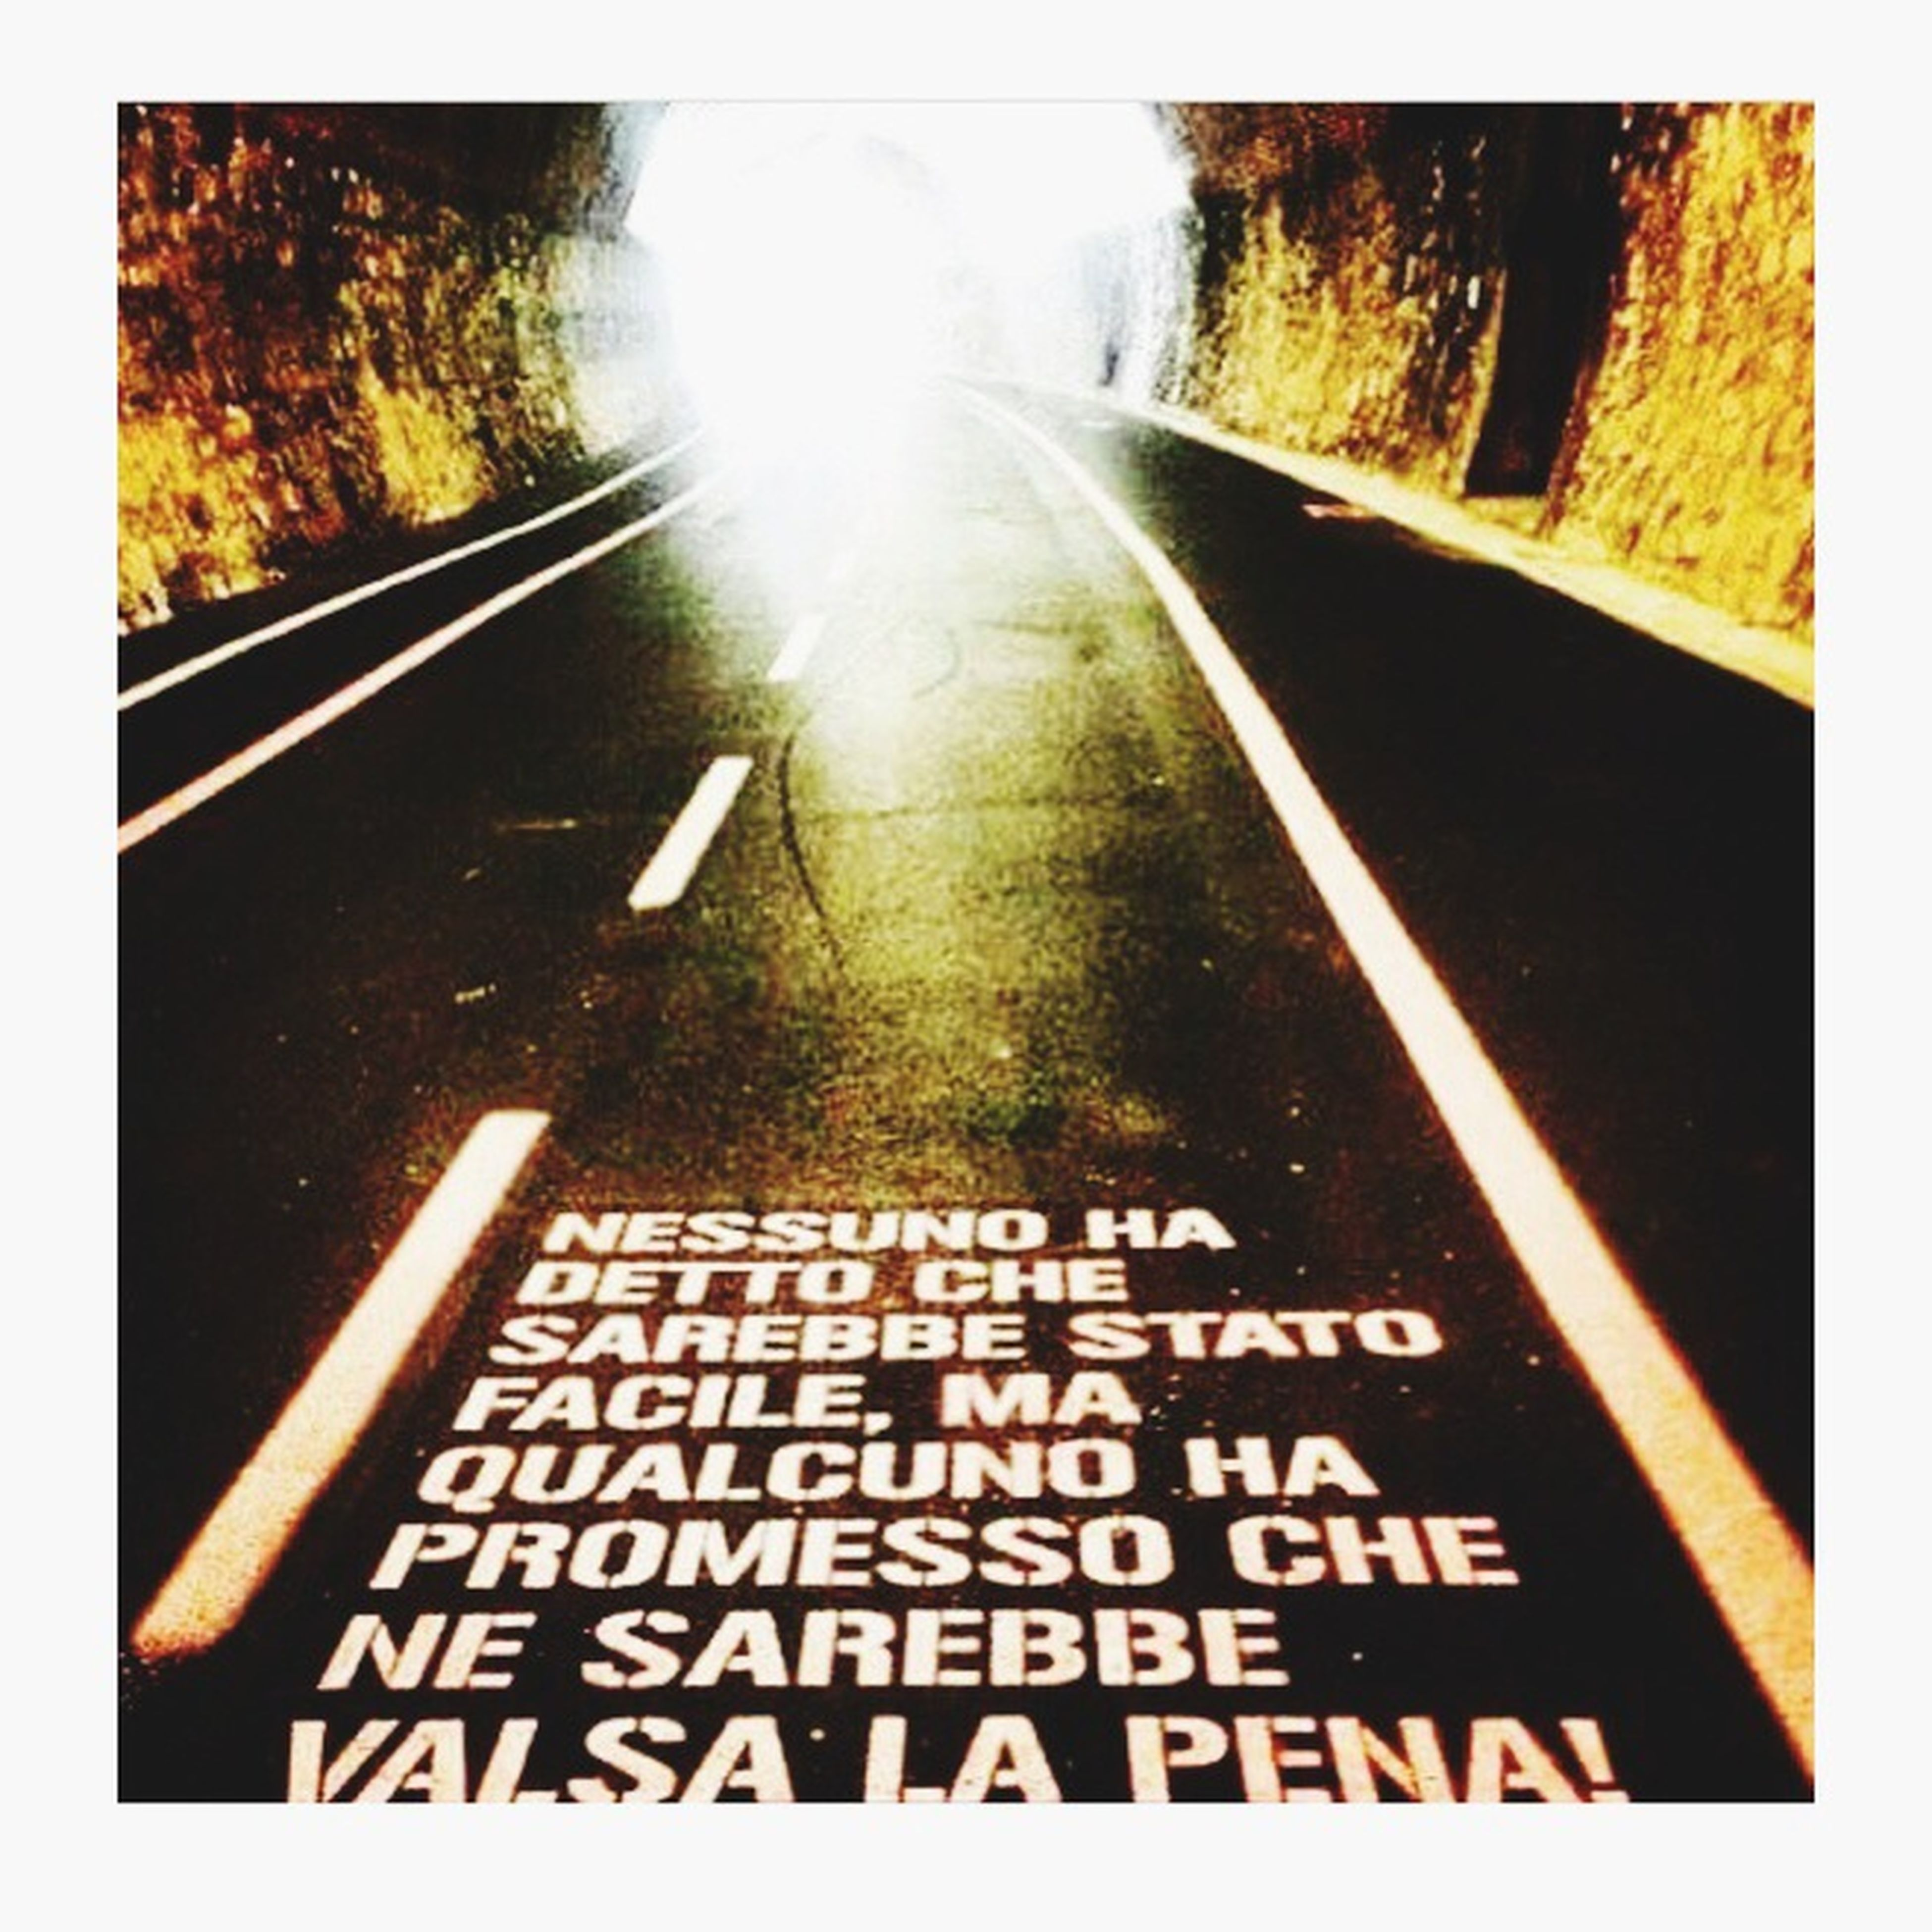 transportation, the way forward, road marking, text, road, communication, guidance, transfer print, diminishing perspective, western script, arrow symbol, auto post production filter, road sign, vanishing point, sign, information sign, directional sign, sunlight, street, direction